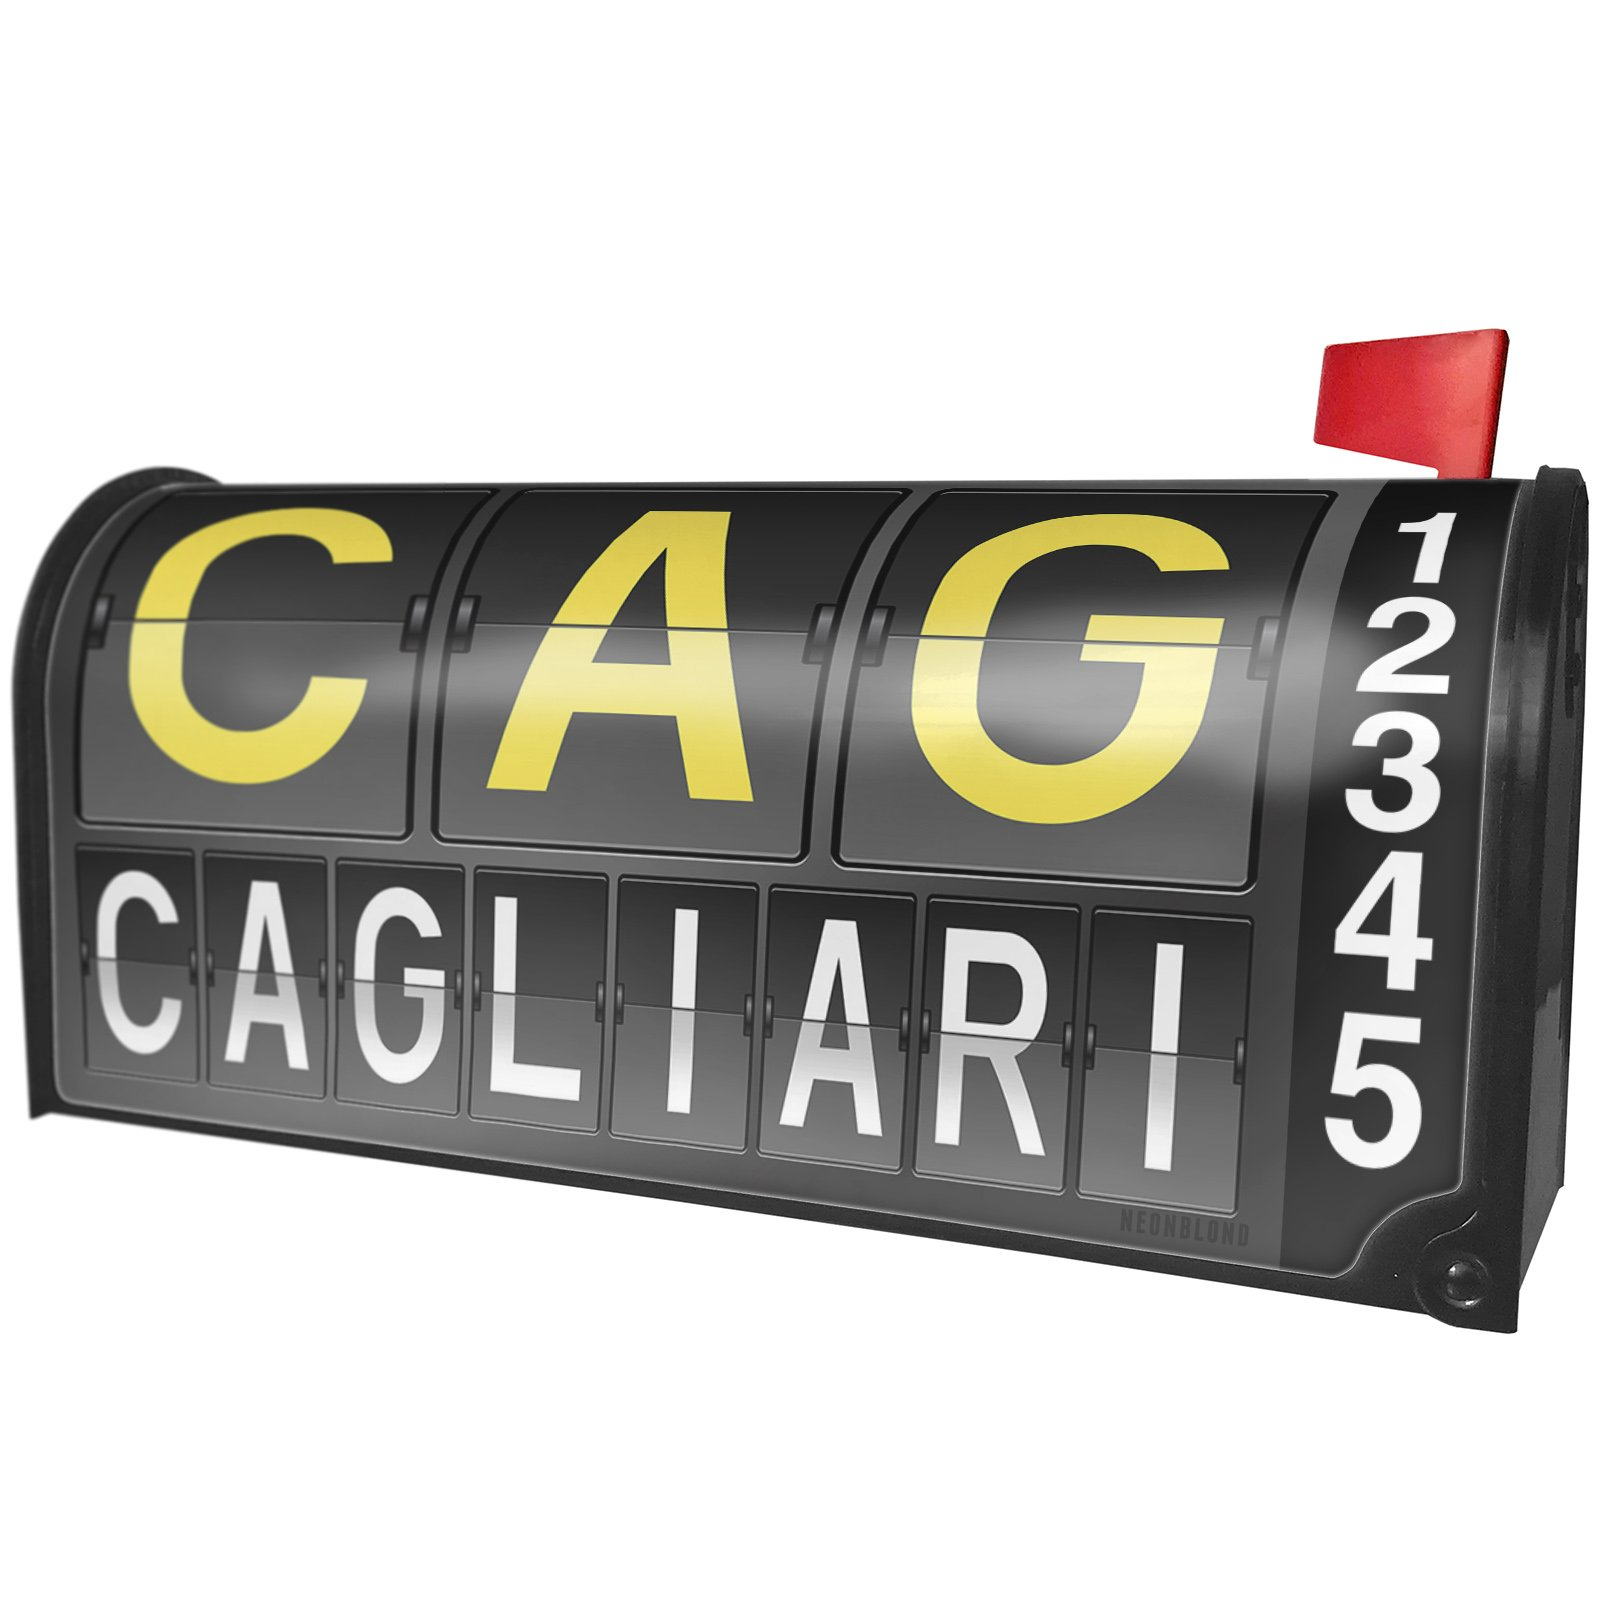 NEONBLOND Cag Airport Code for Cagliari Magnetic Mailbox Cover Custom Numbers